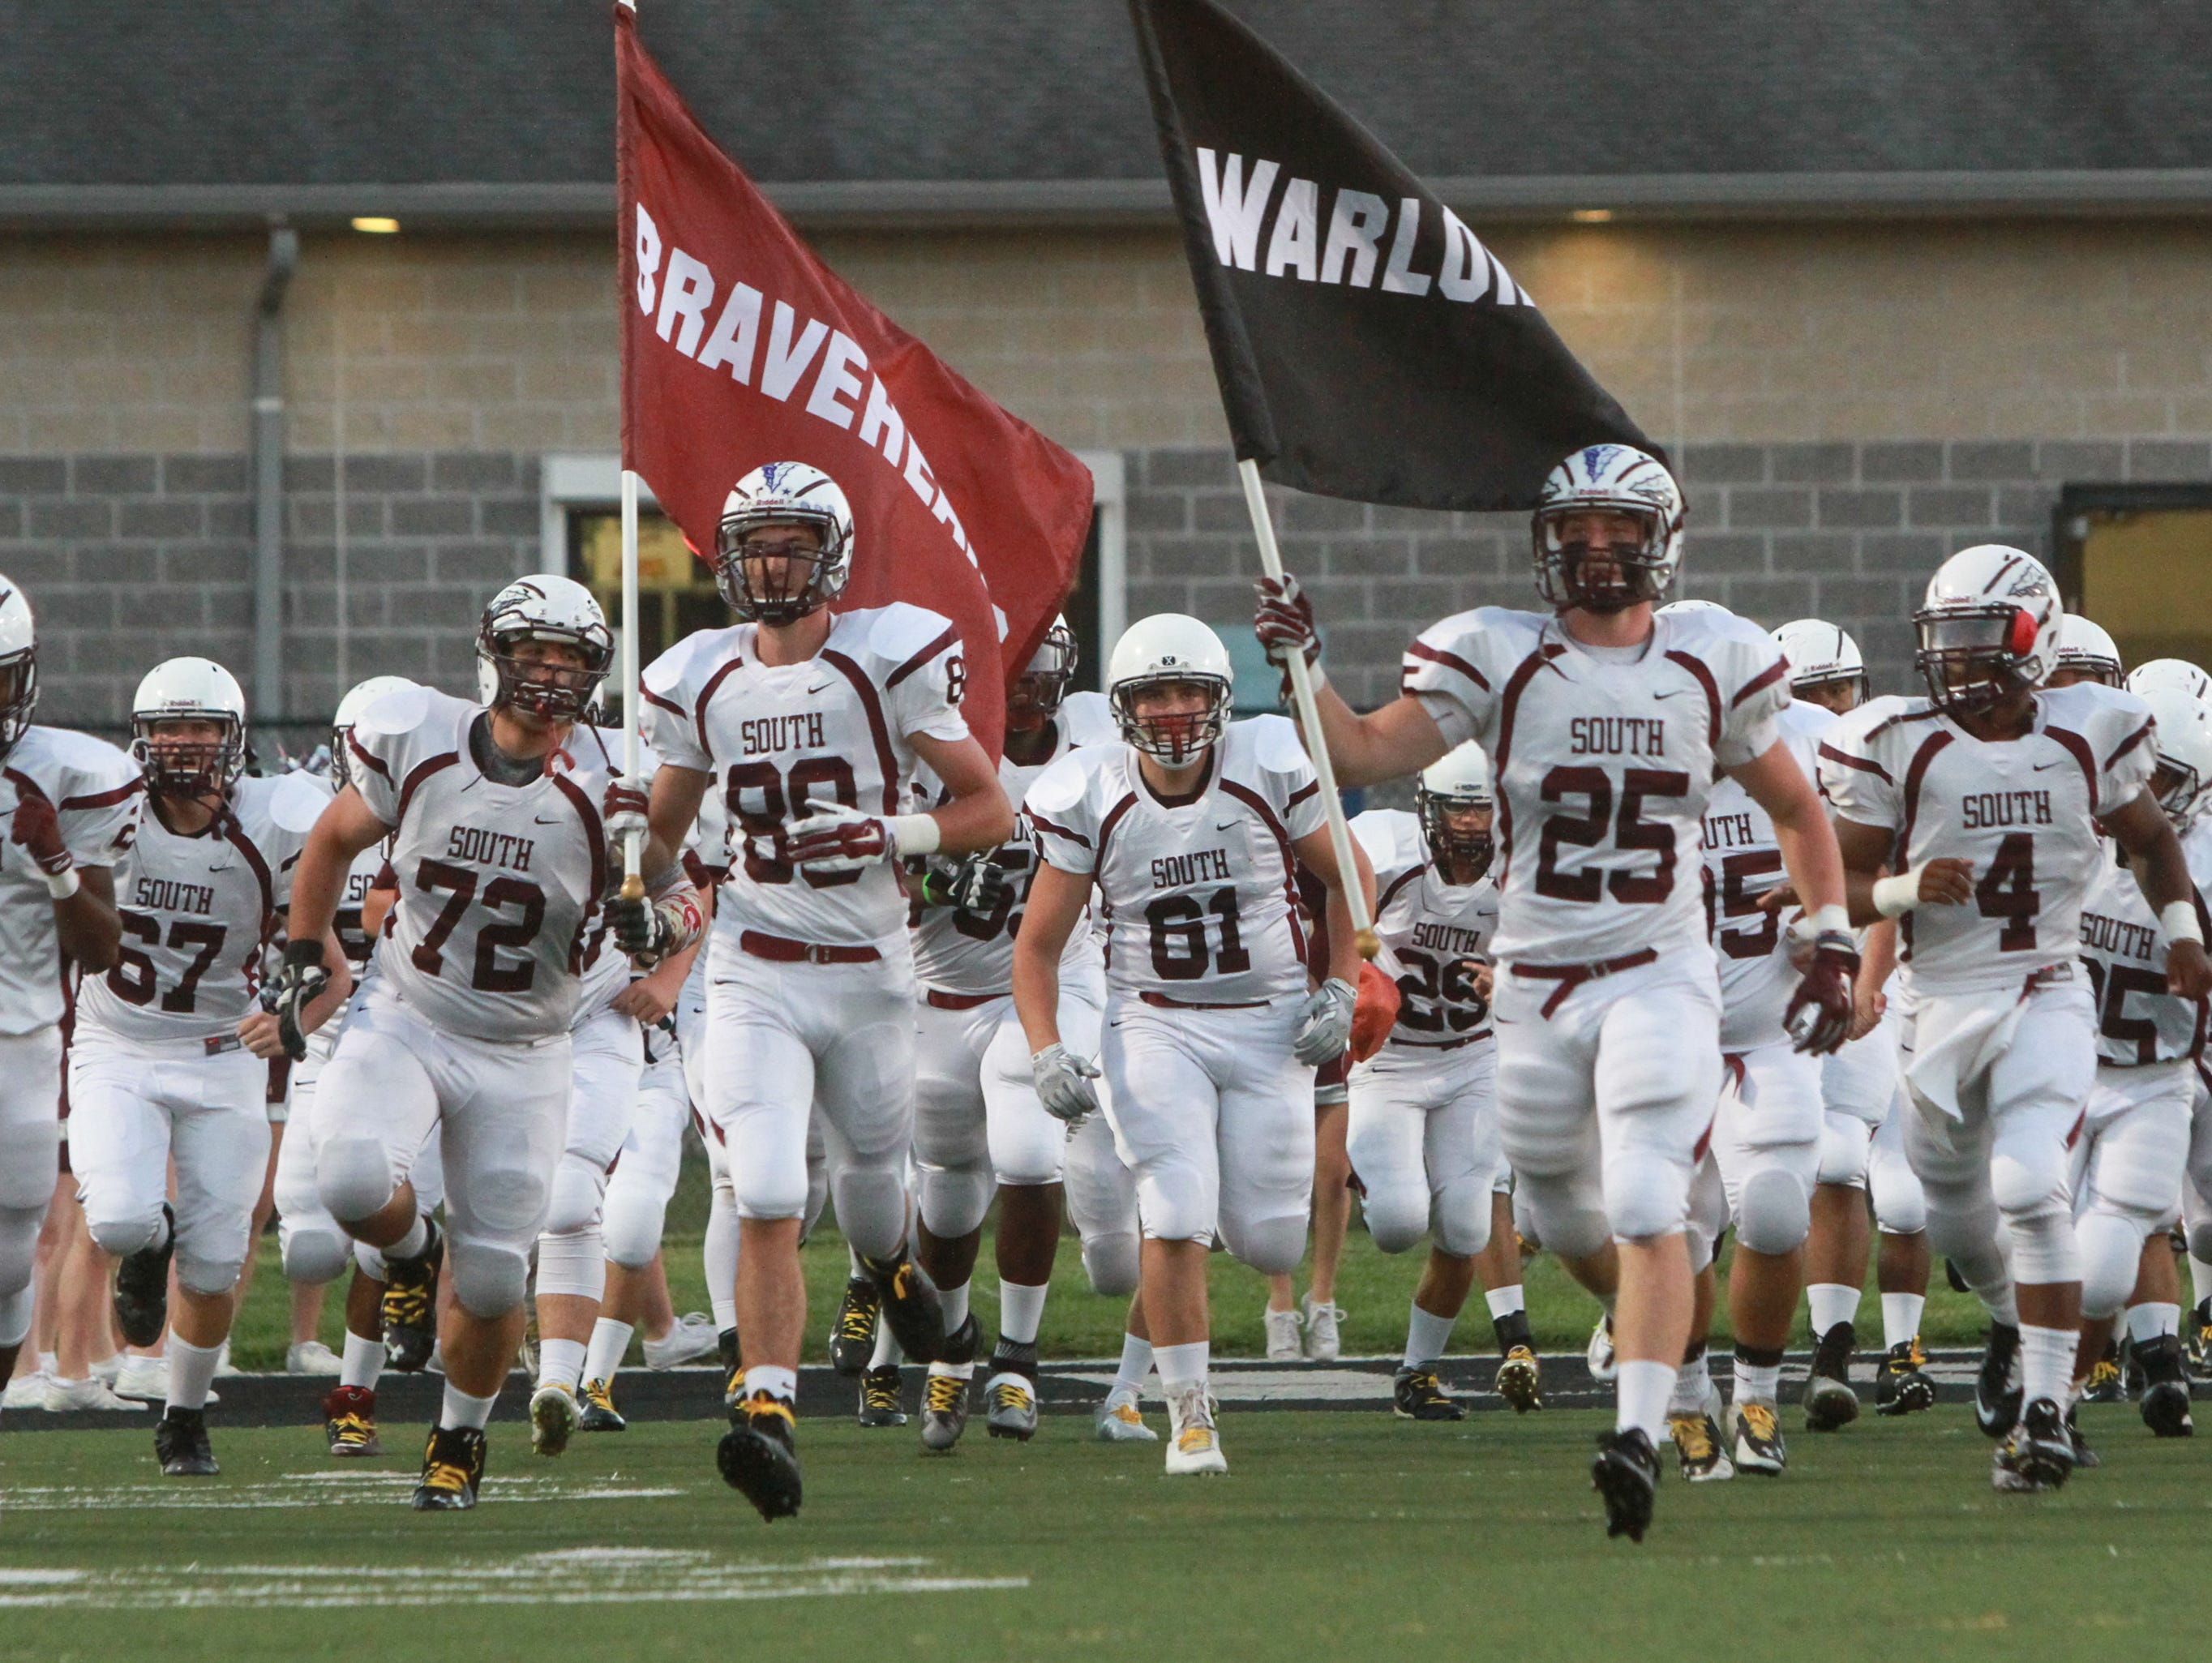 Toms River, NJ TRS enters the field. Toms River High South at Toms River High School East. 091815 - 3252147